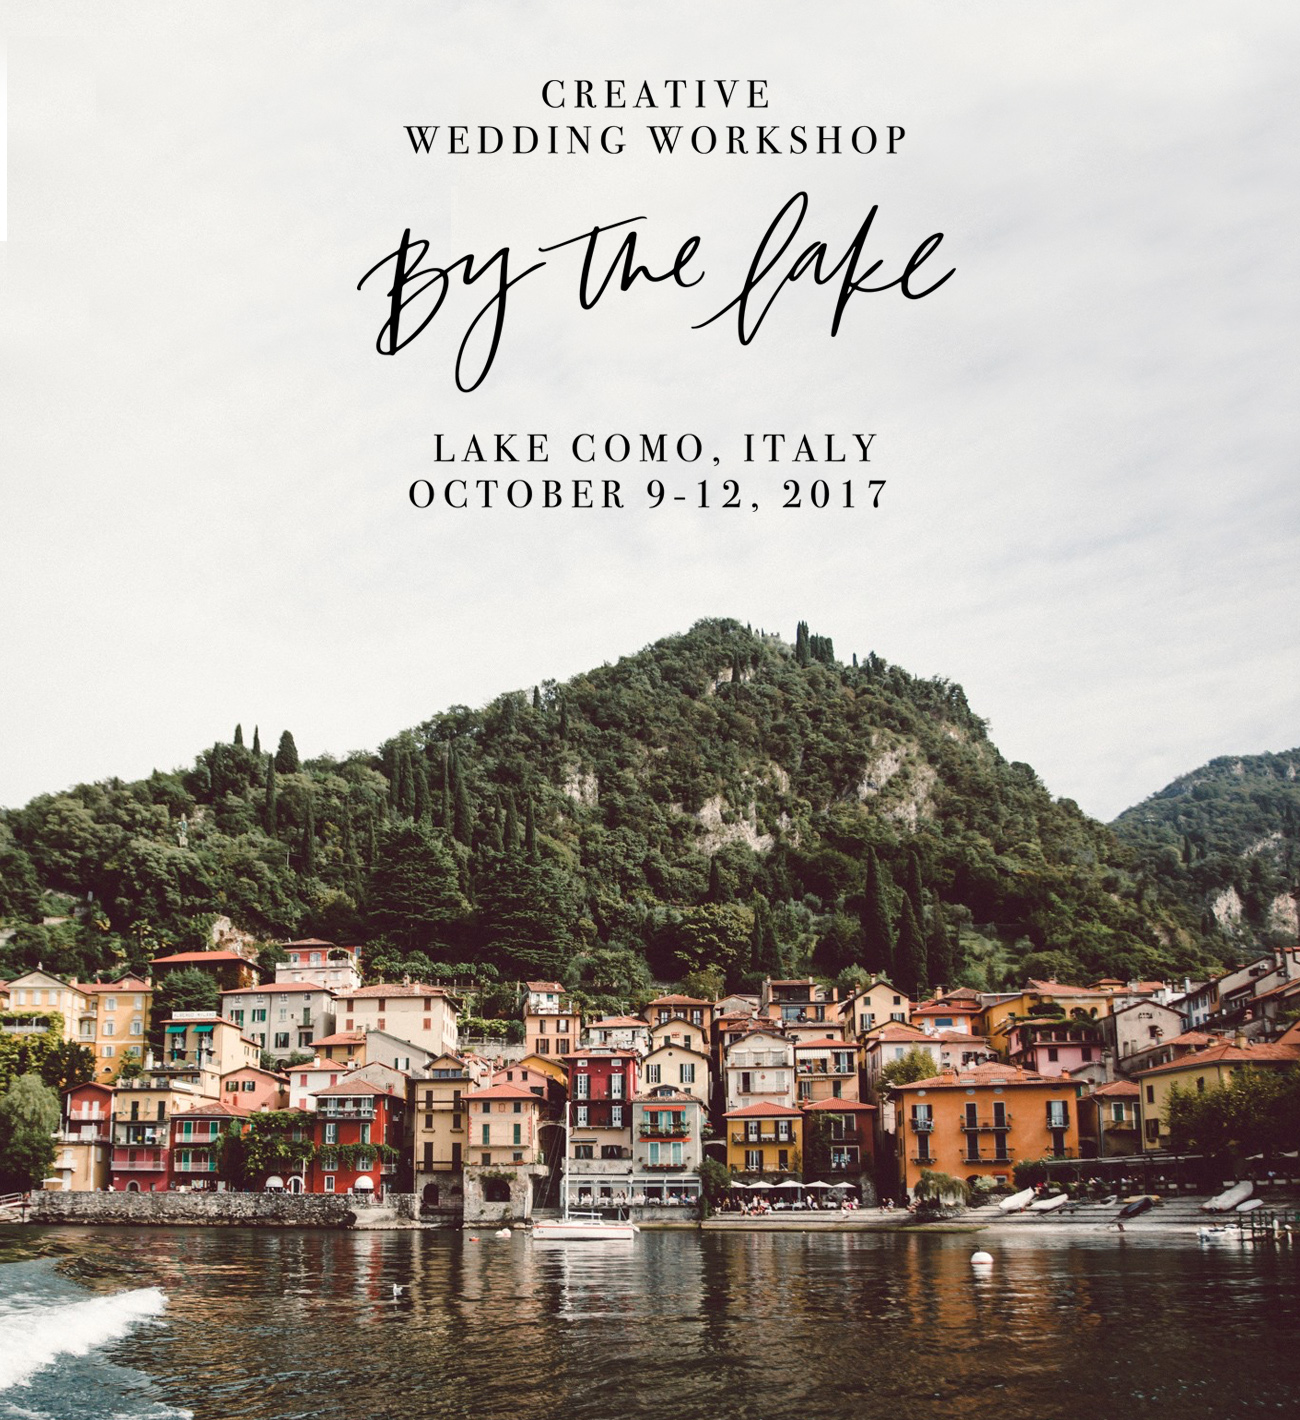 By The Lake Wedding Workshop in Lake Como